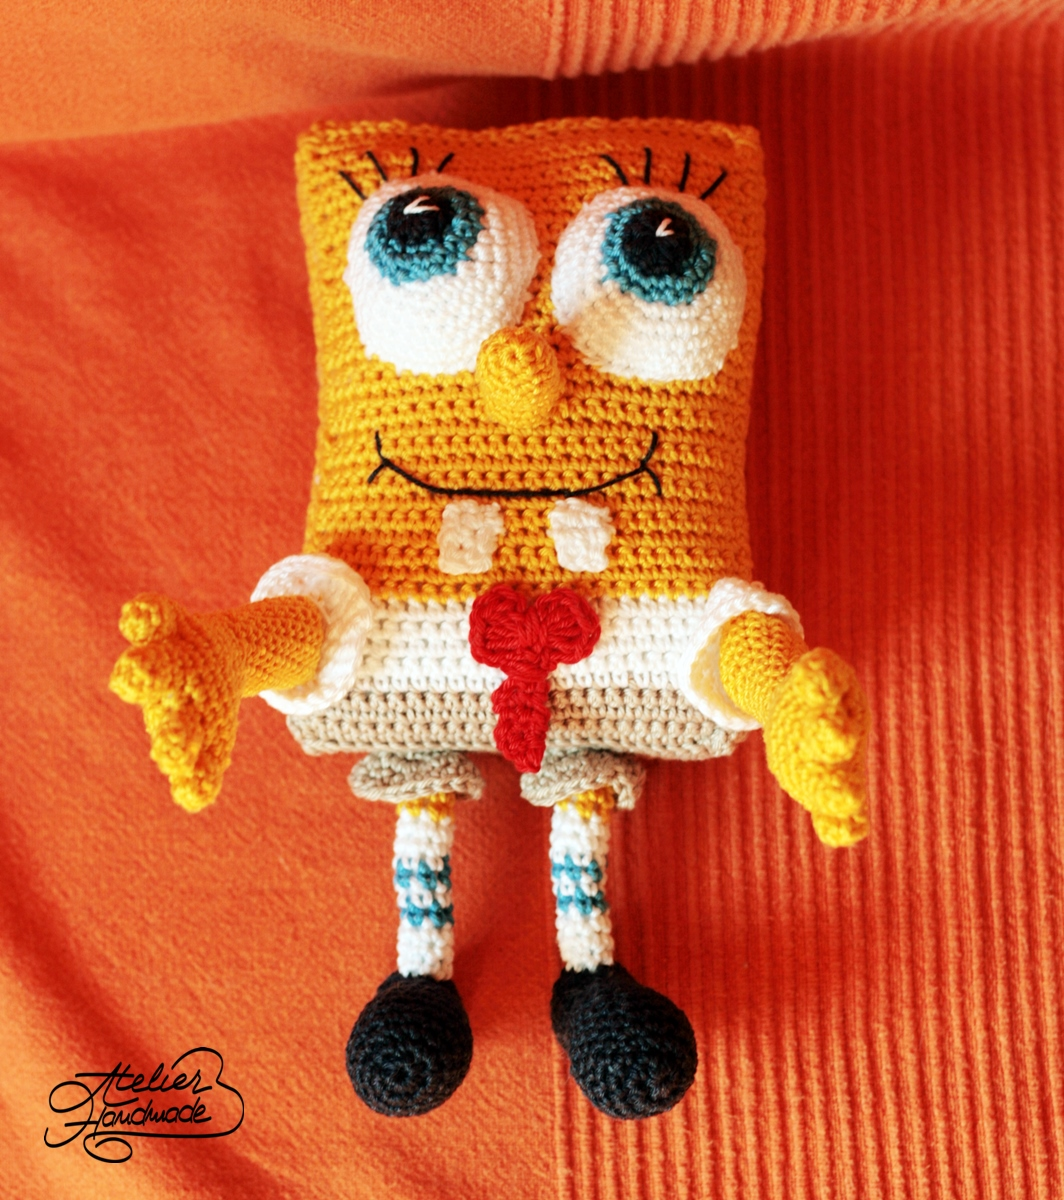 spongebob-squarepants-crochet